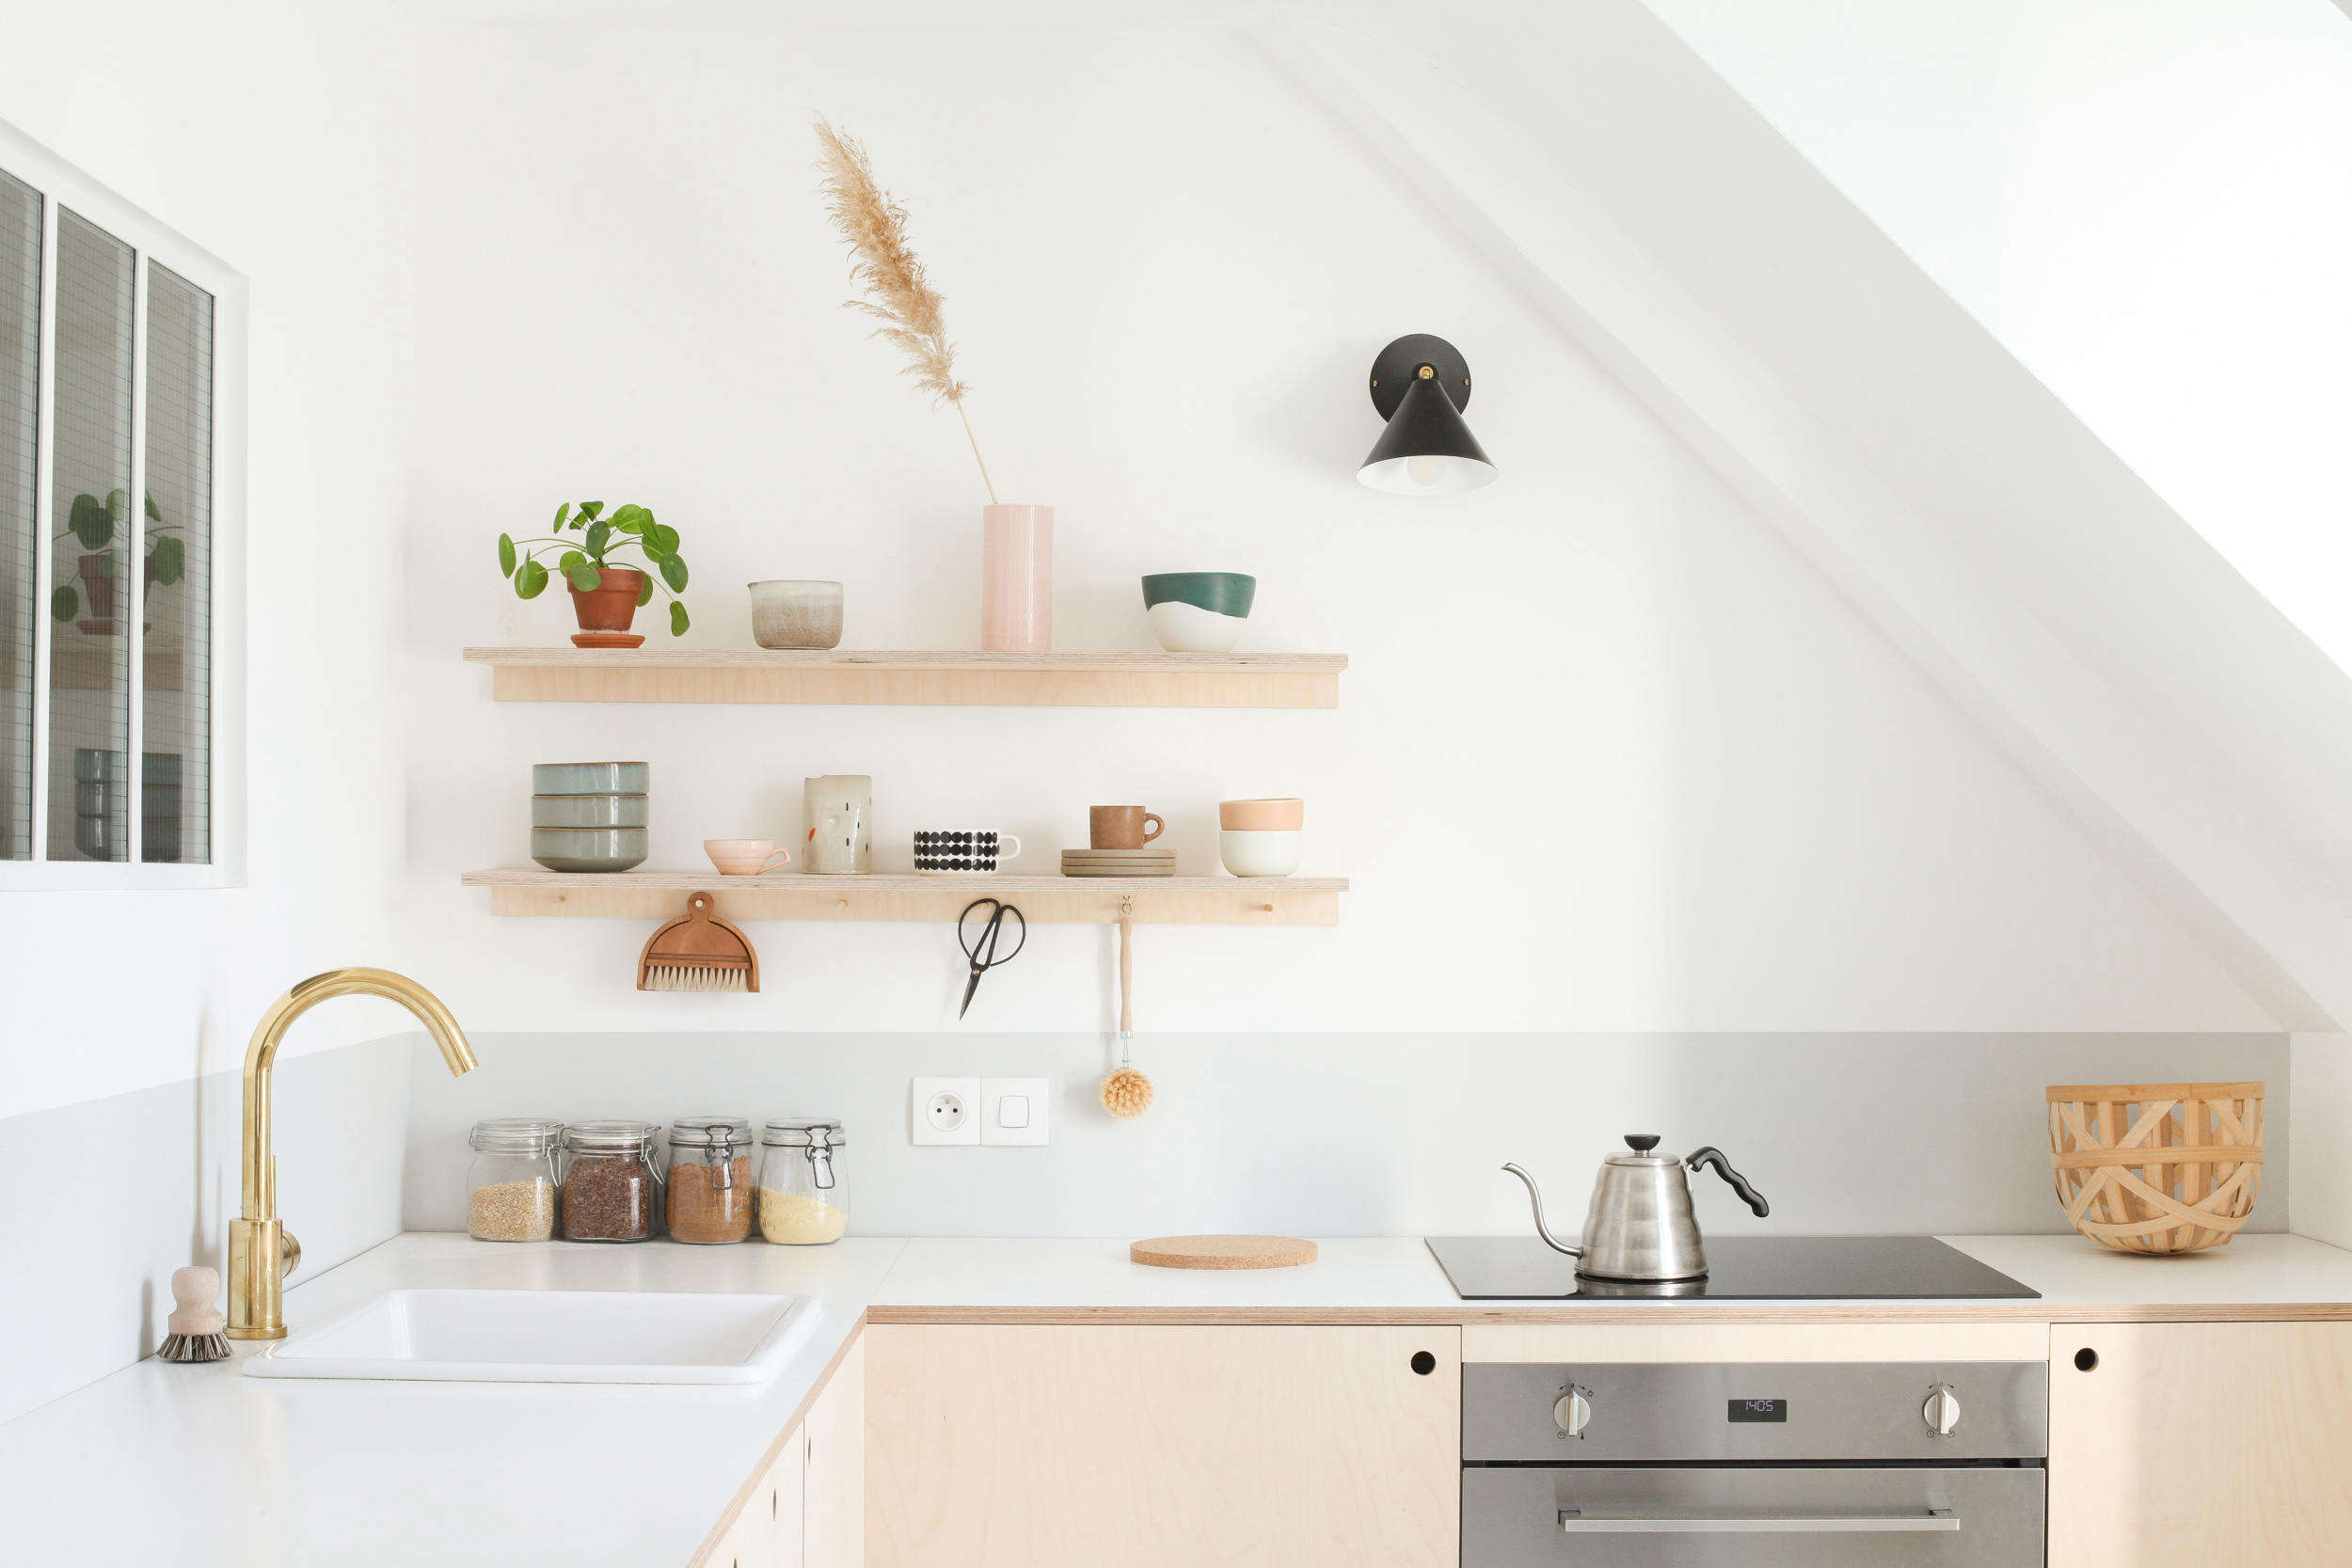 Budget Small Kitchen Makeover: Two Young Architects Build Themselves Their Dream Kitchen